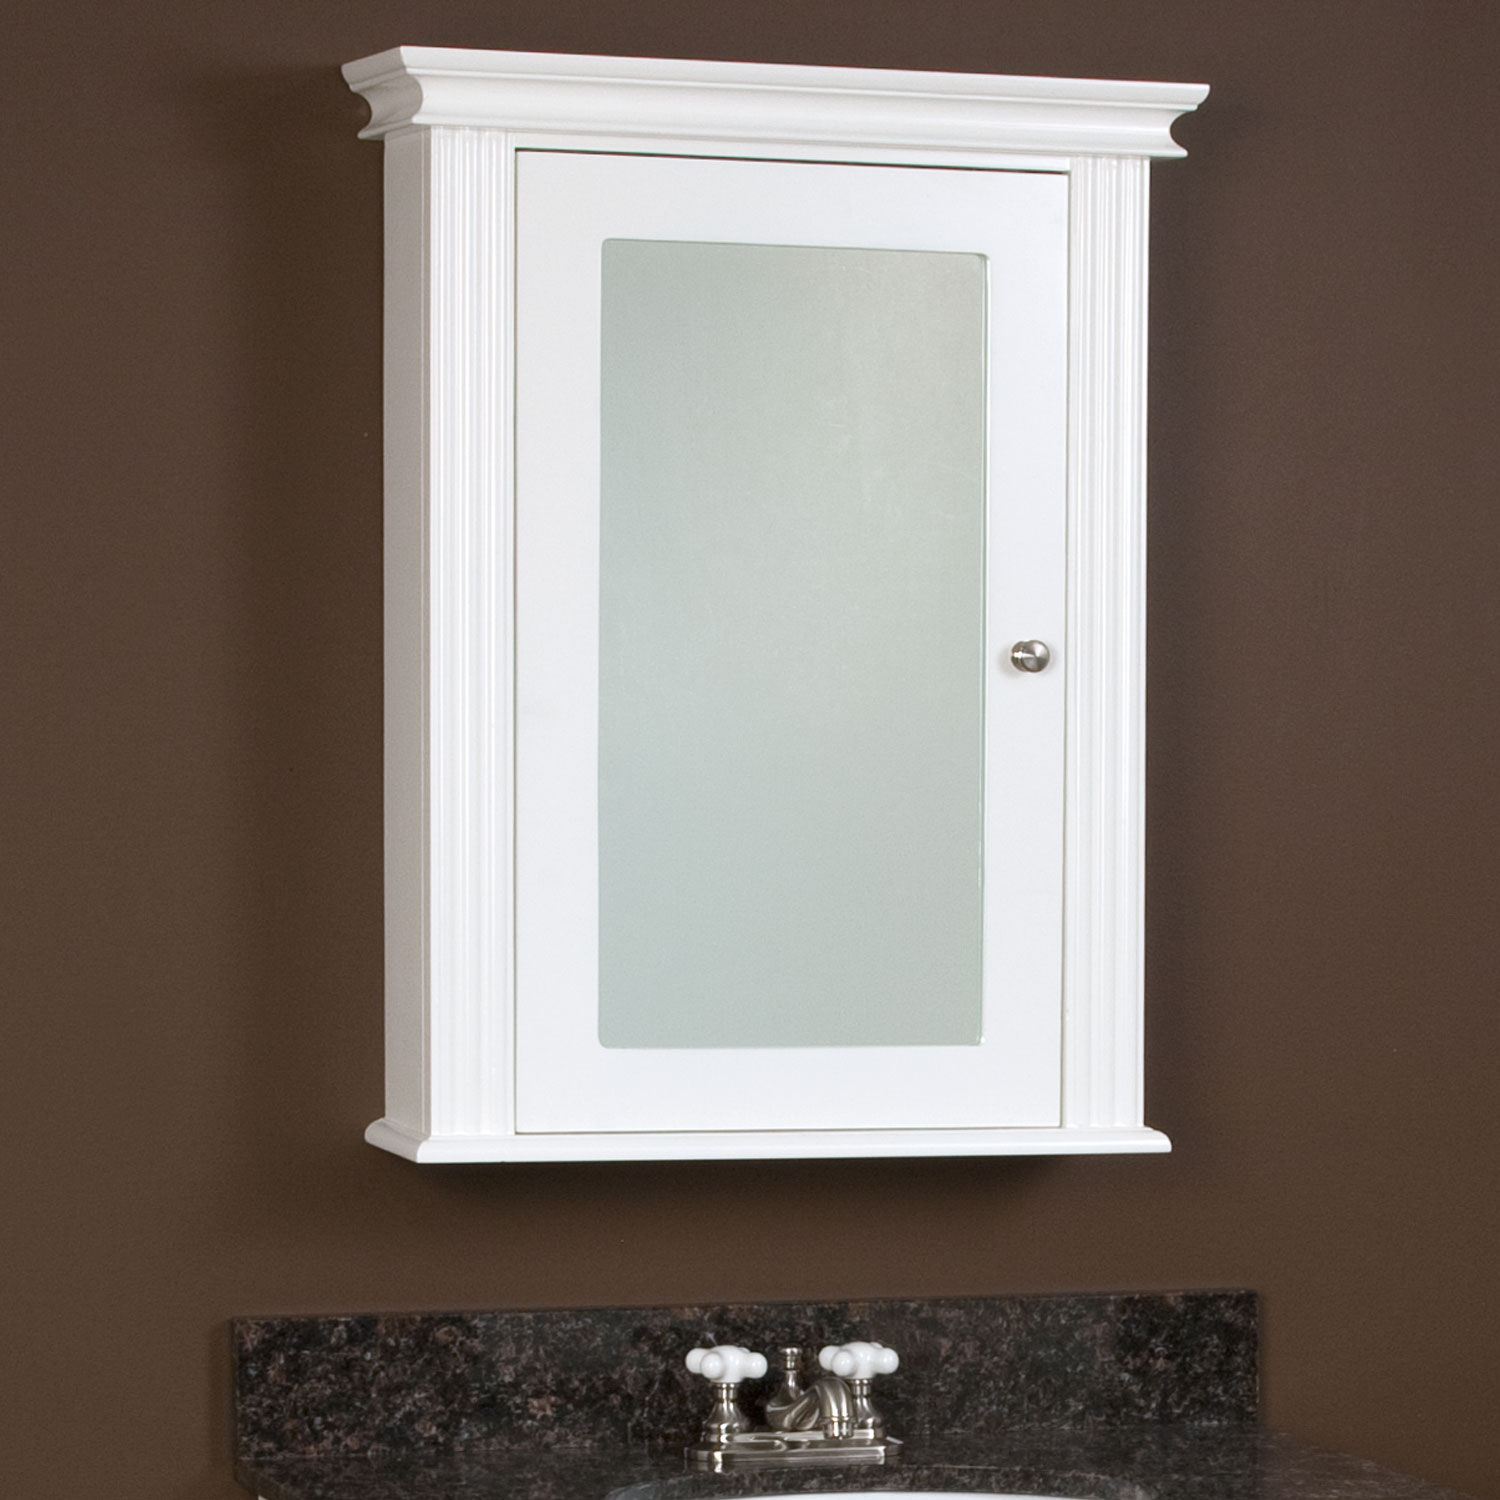 white wood medicine cabinets with mirrors, Bathroom decor